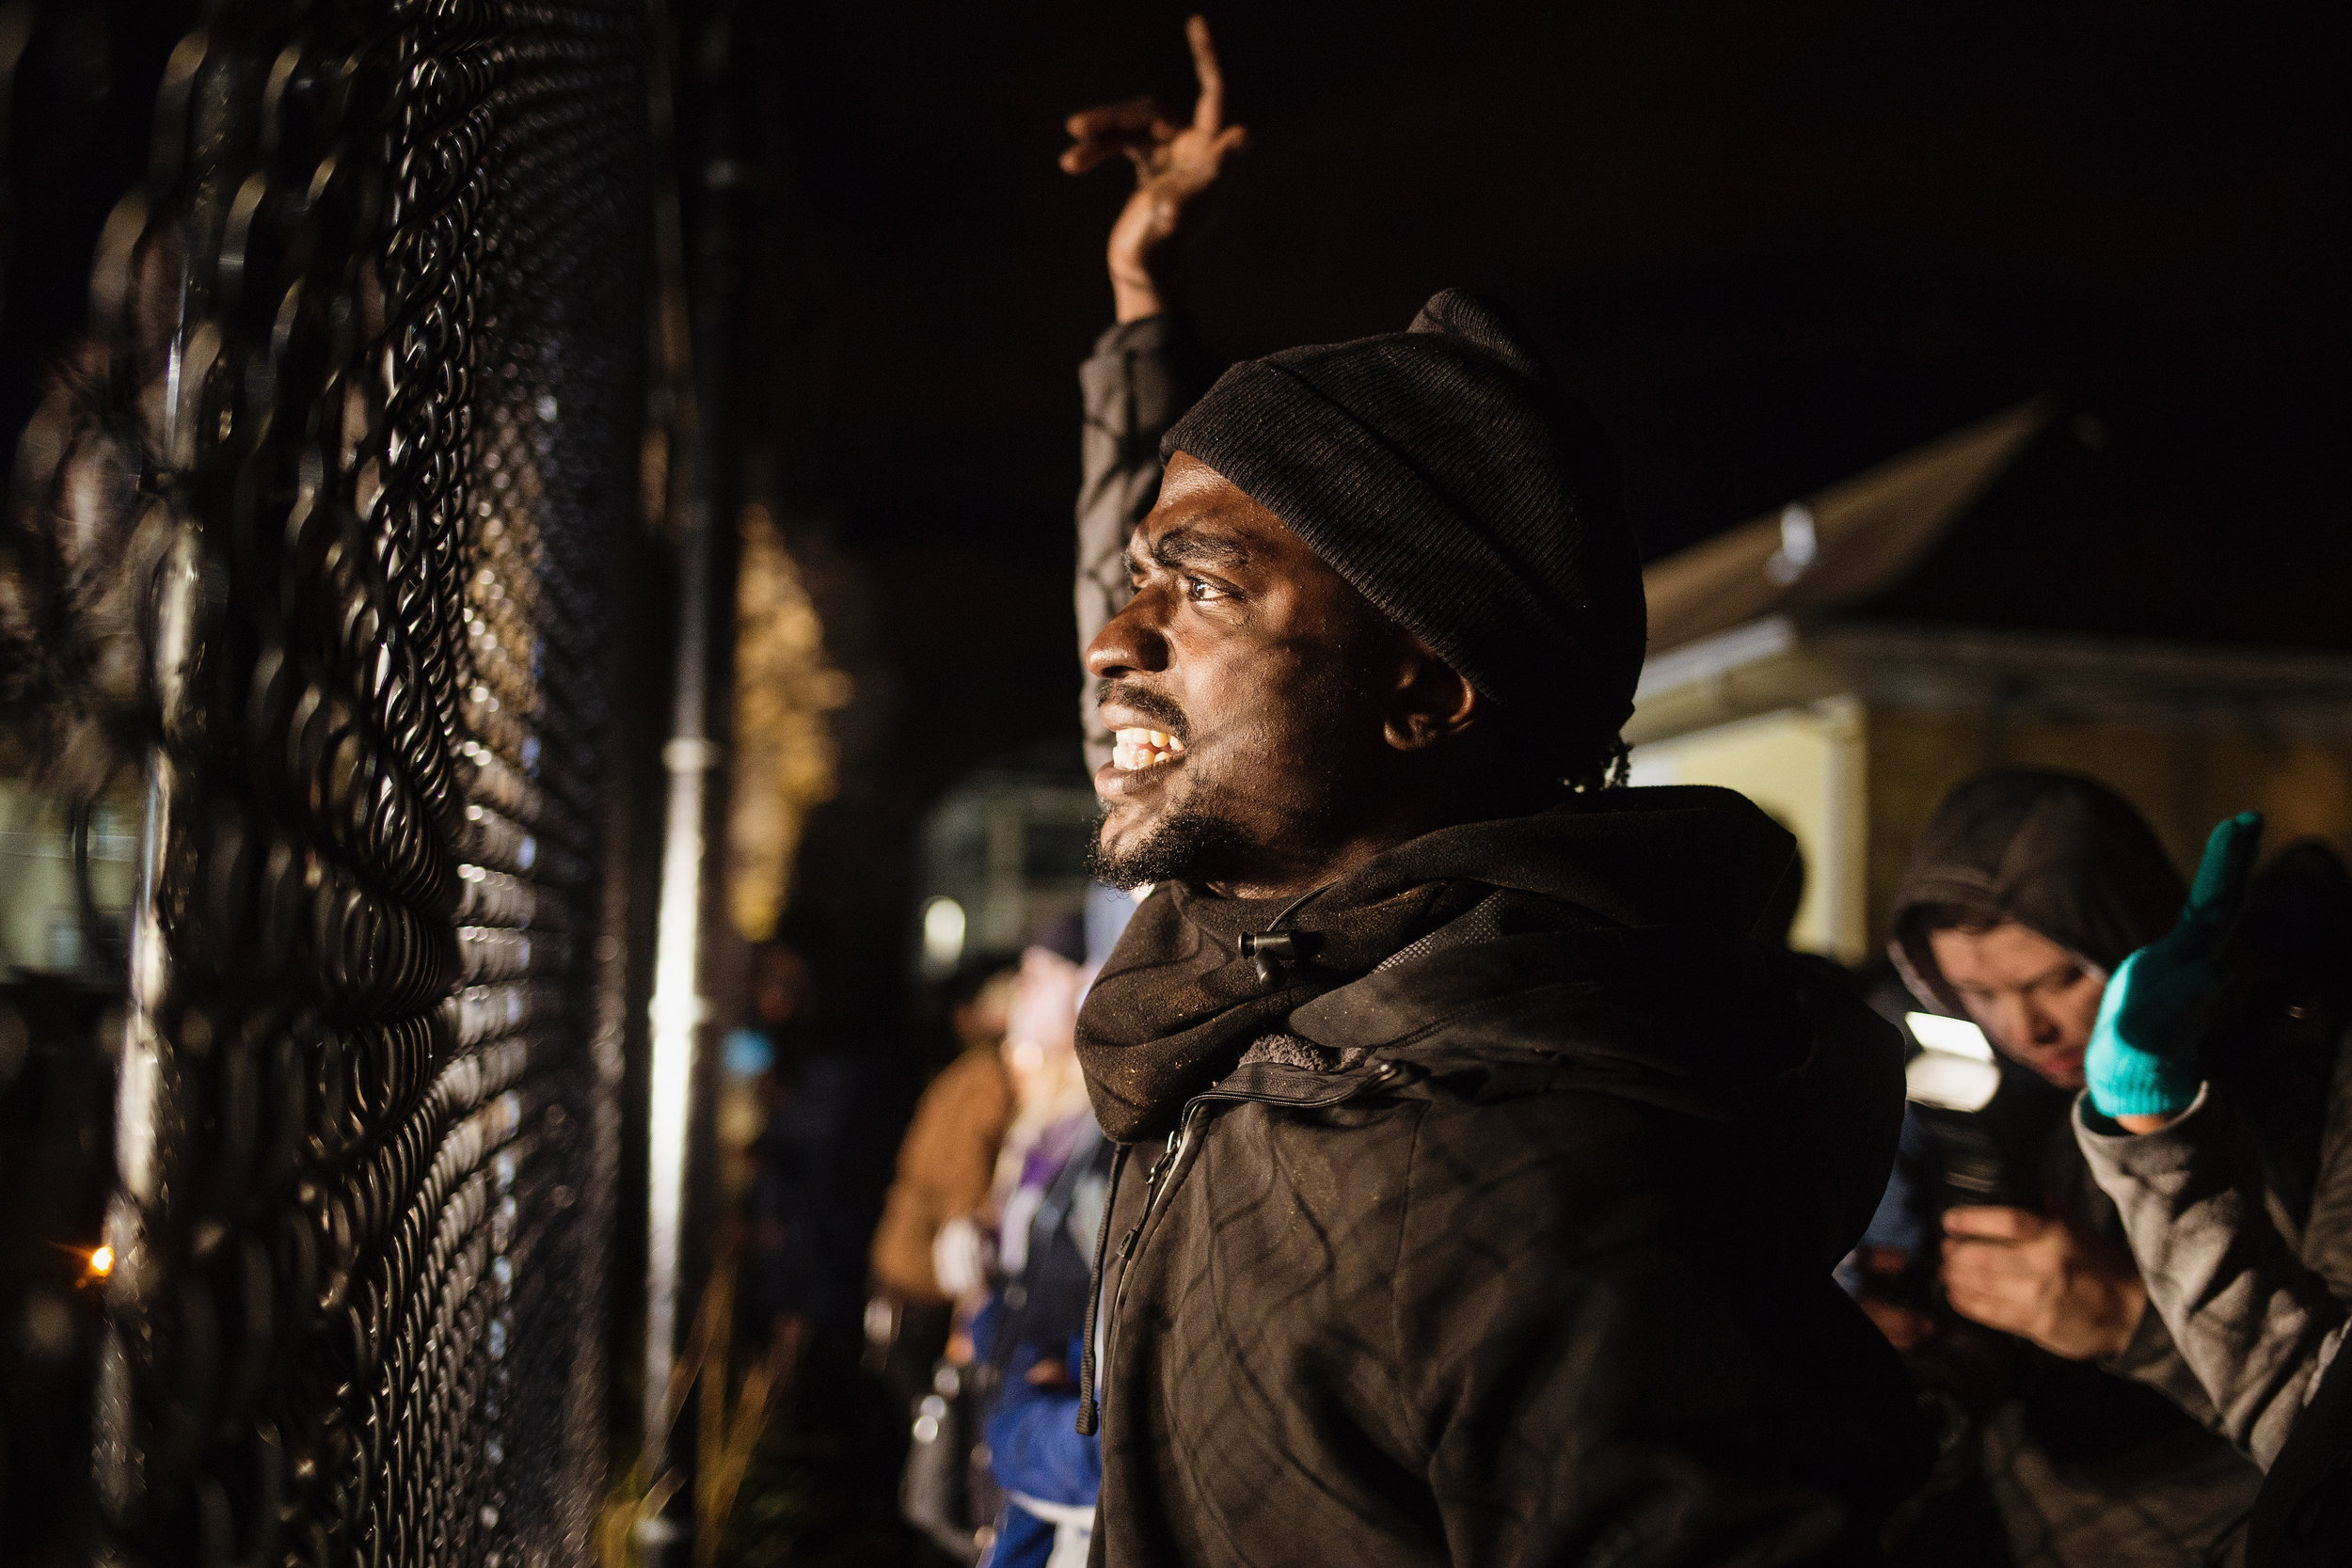 Protestors flank the back entrance at the fourth precinct on Wednesday, November 18, 2015, in Minneapolis, Minn.